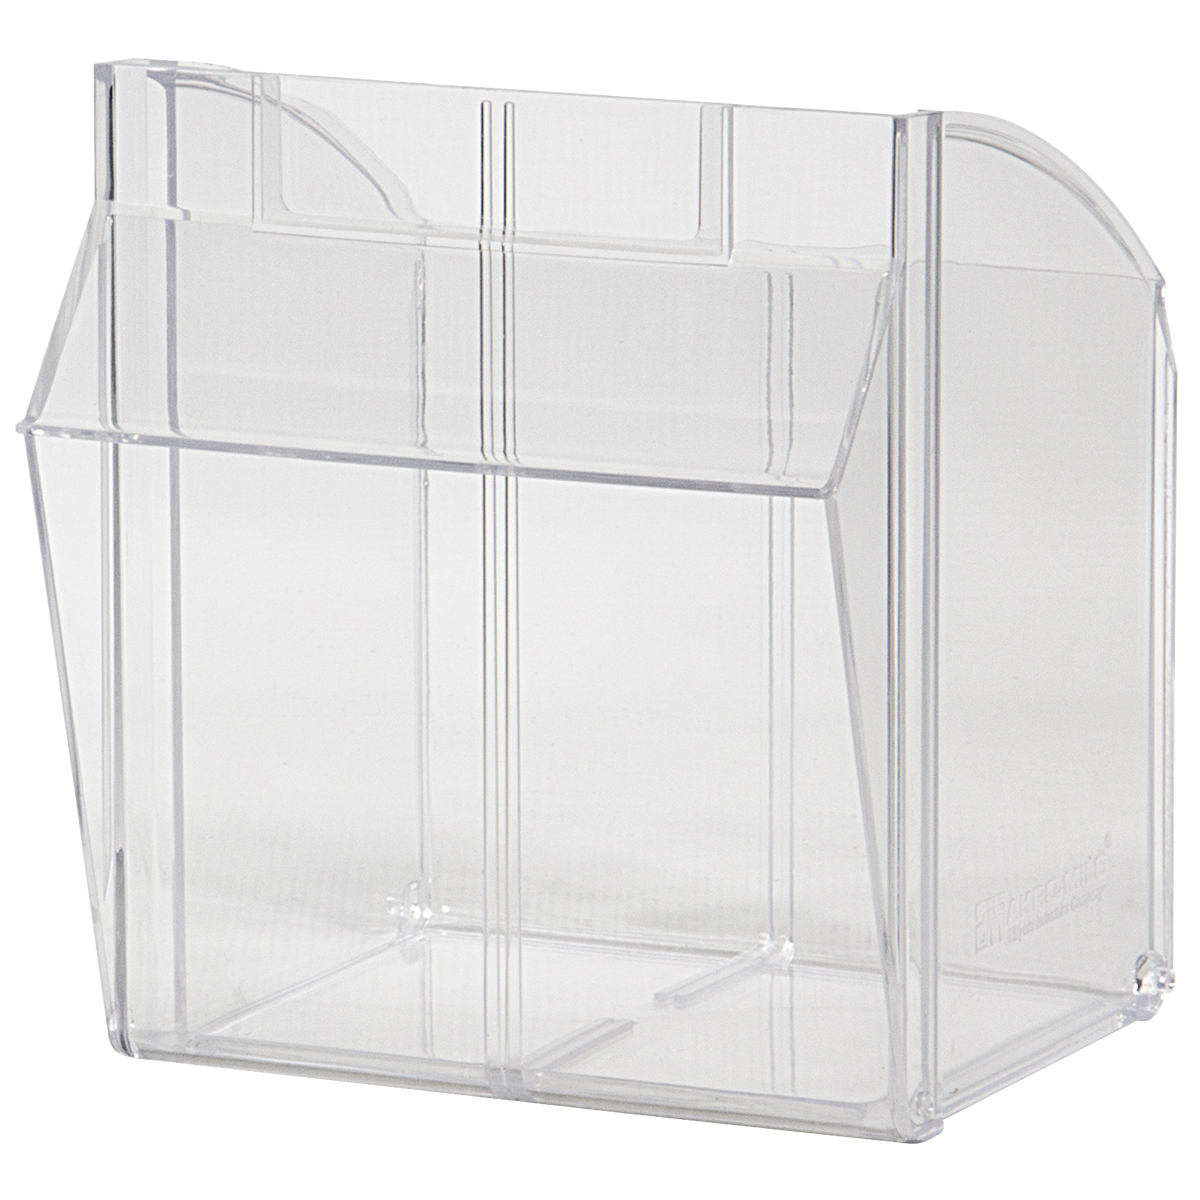 Replacement Bin for Model 06703, Clear (06703CUP).  This item sold in carton quantities of 1.